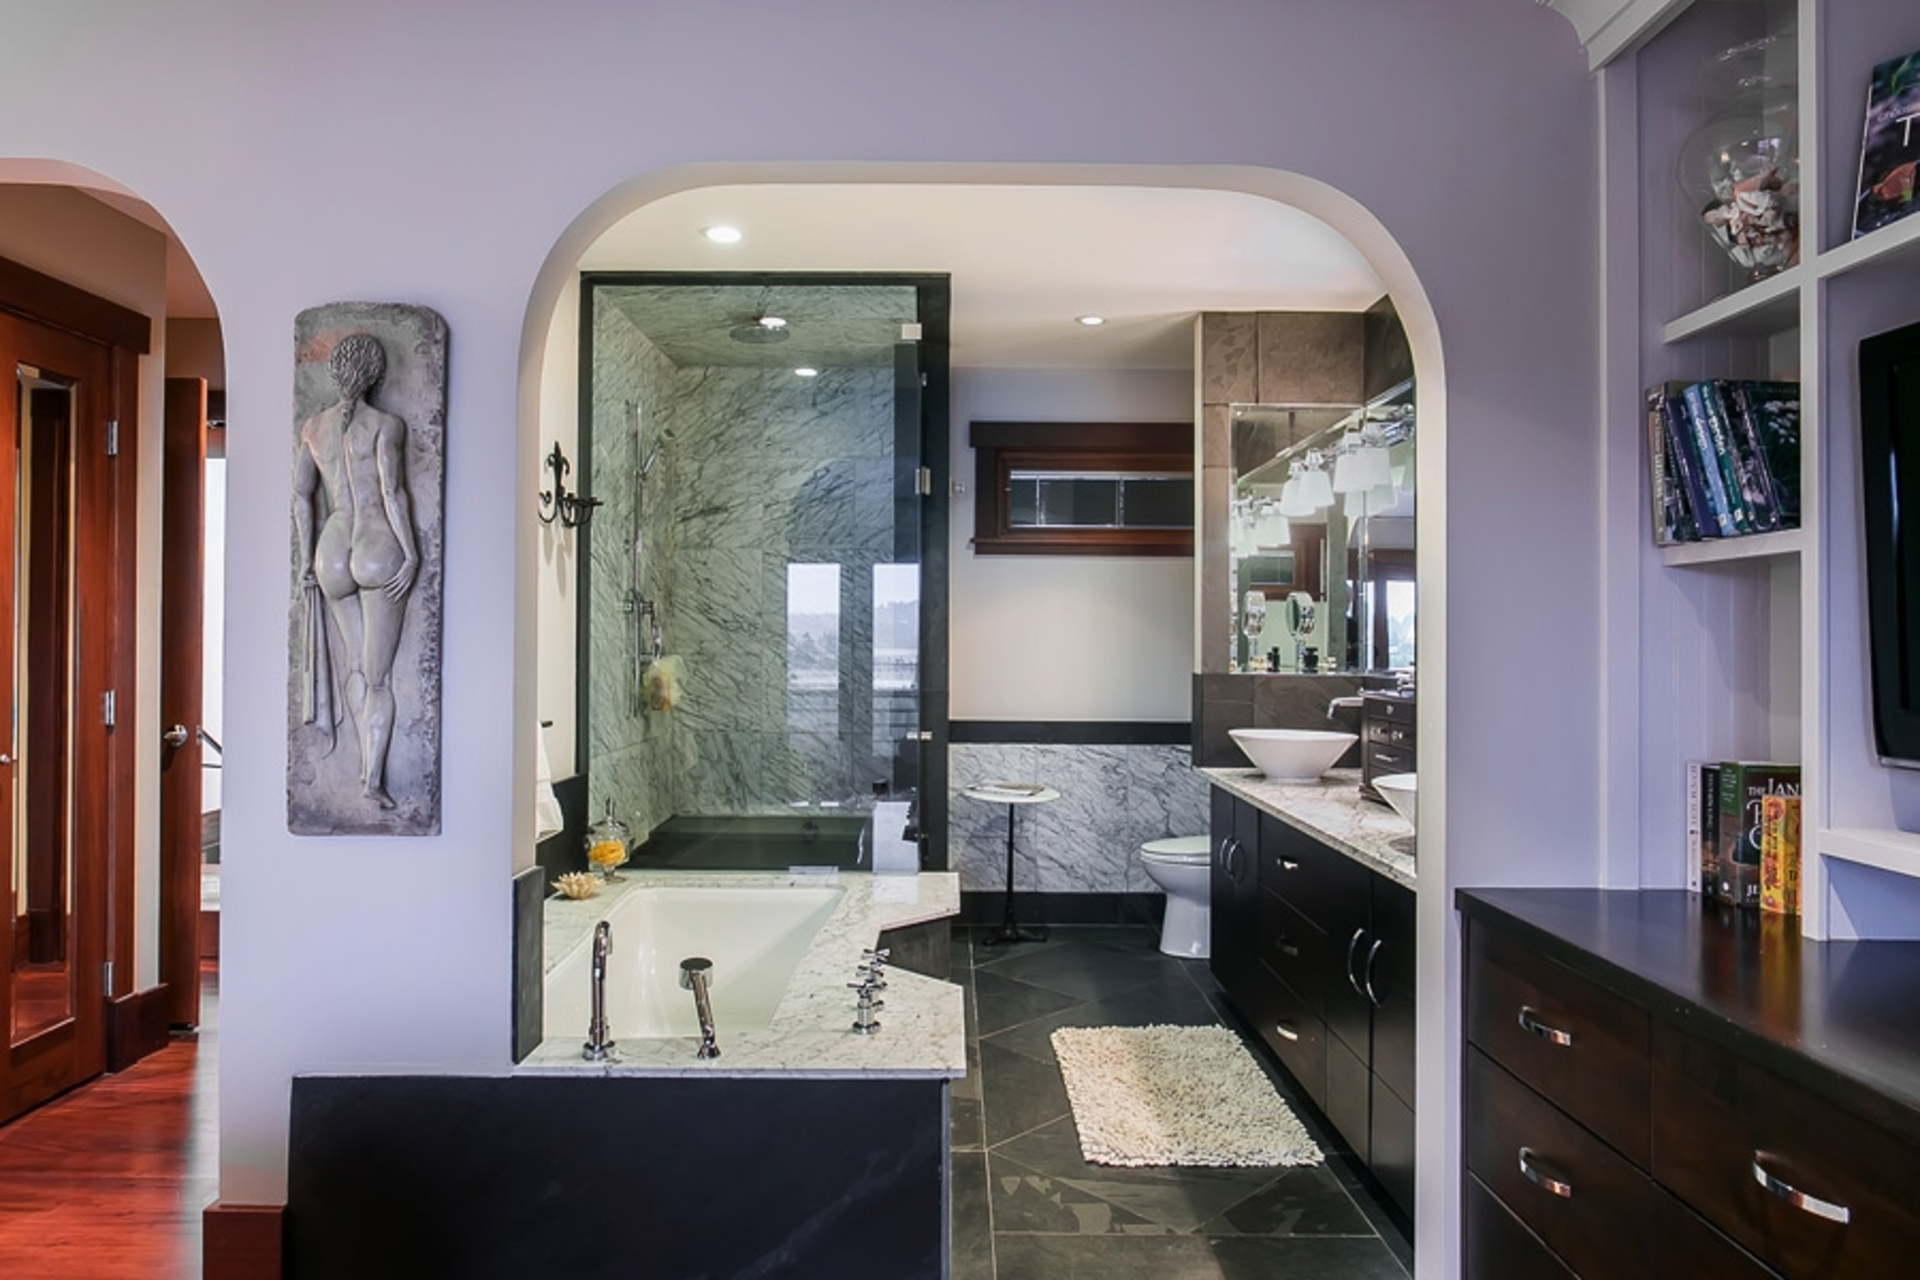 Bathroom at Address Upon Request, Deep Cove, North Vancouver